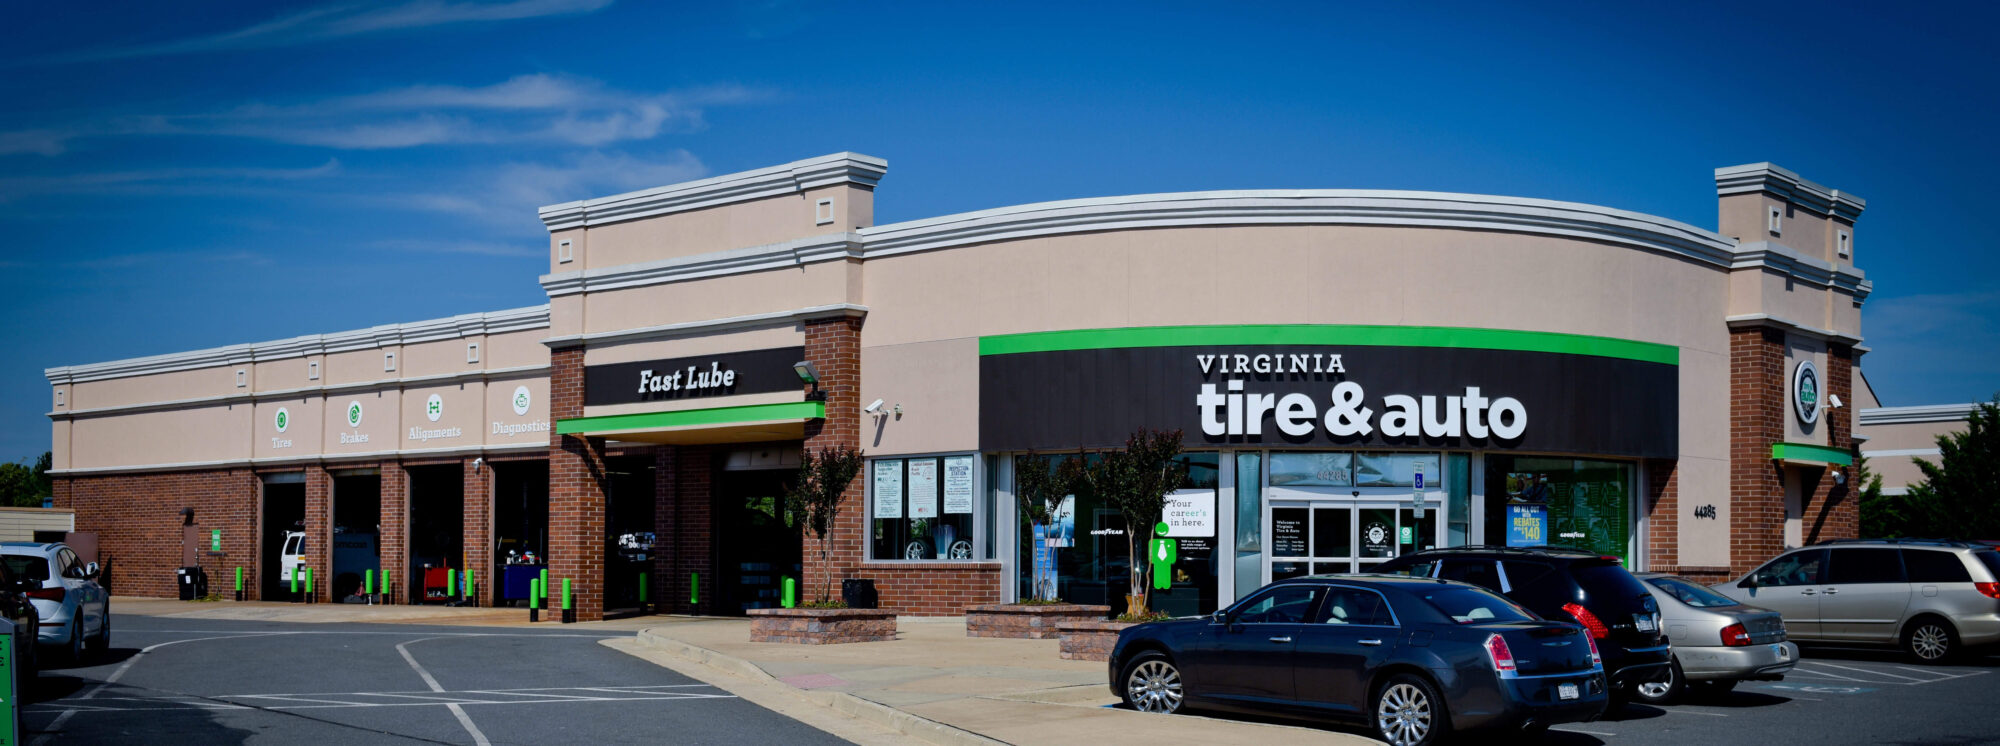 Tire Shops Near Me Open On Sunday >> Virginia Tire Auto Of Ashburn Dulles Tires Mechanics Oil Changes